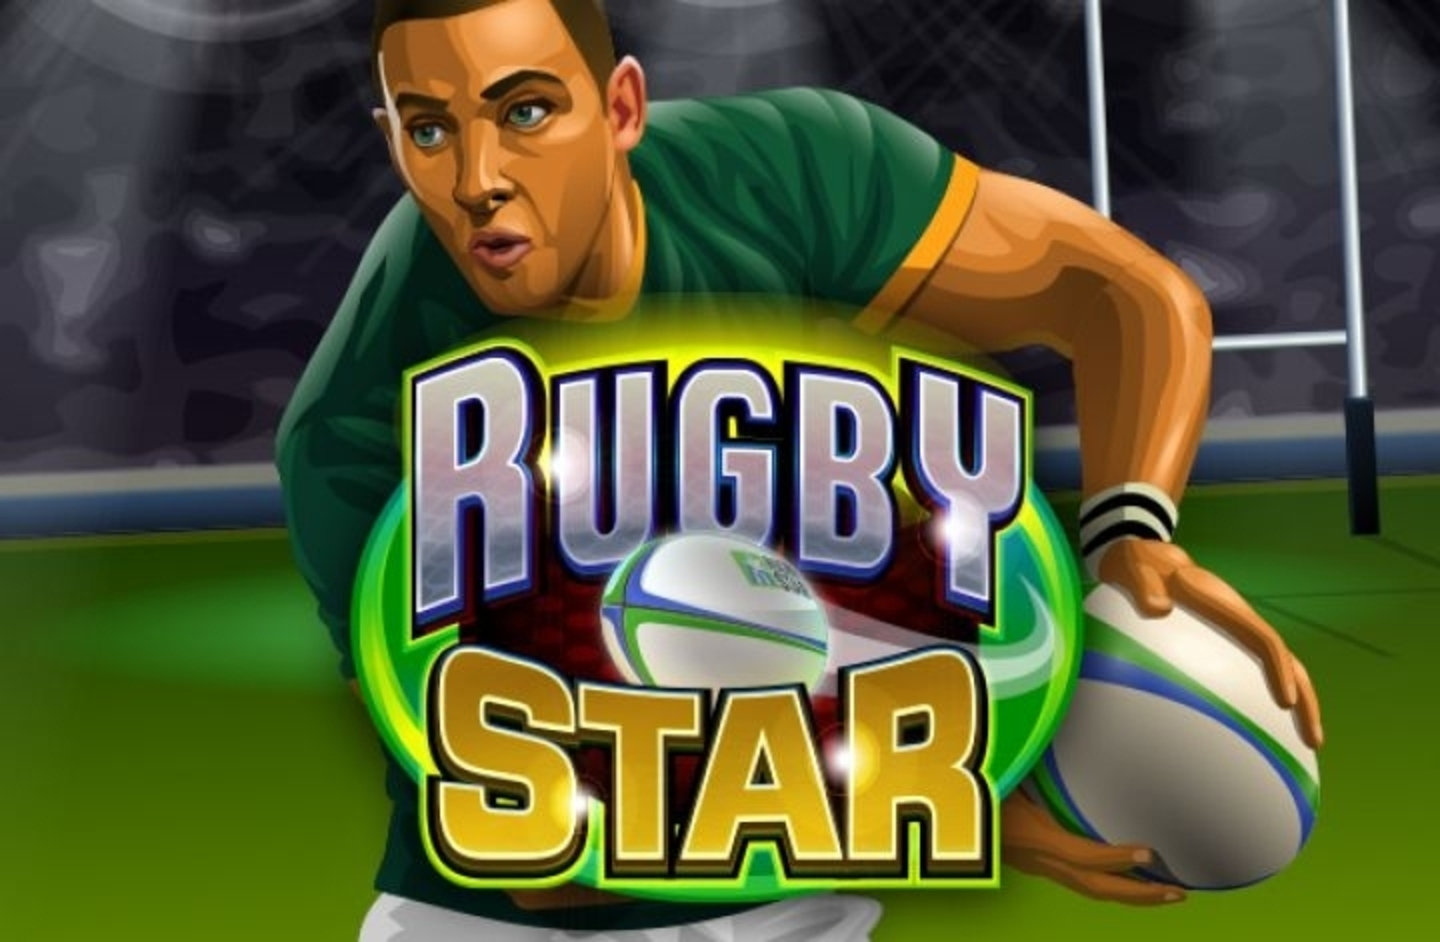 The Rugby Star Online Slot Demo Game by Microgaming